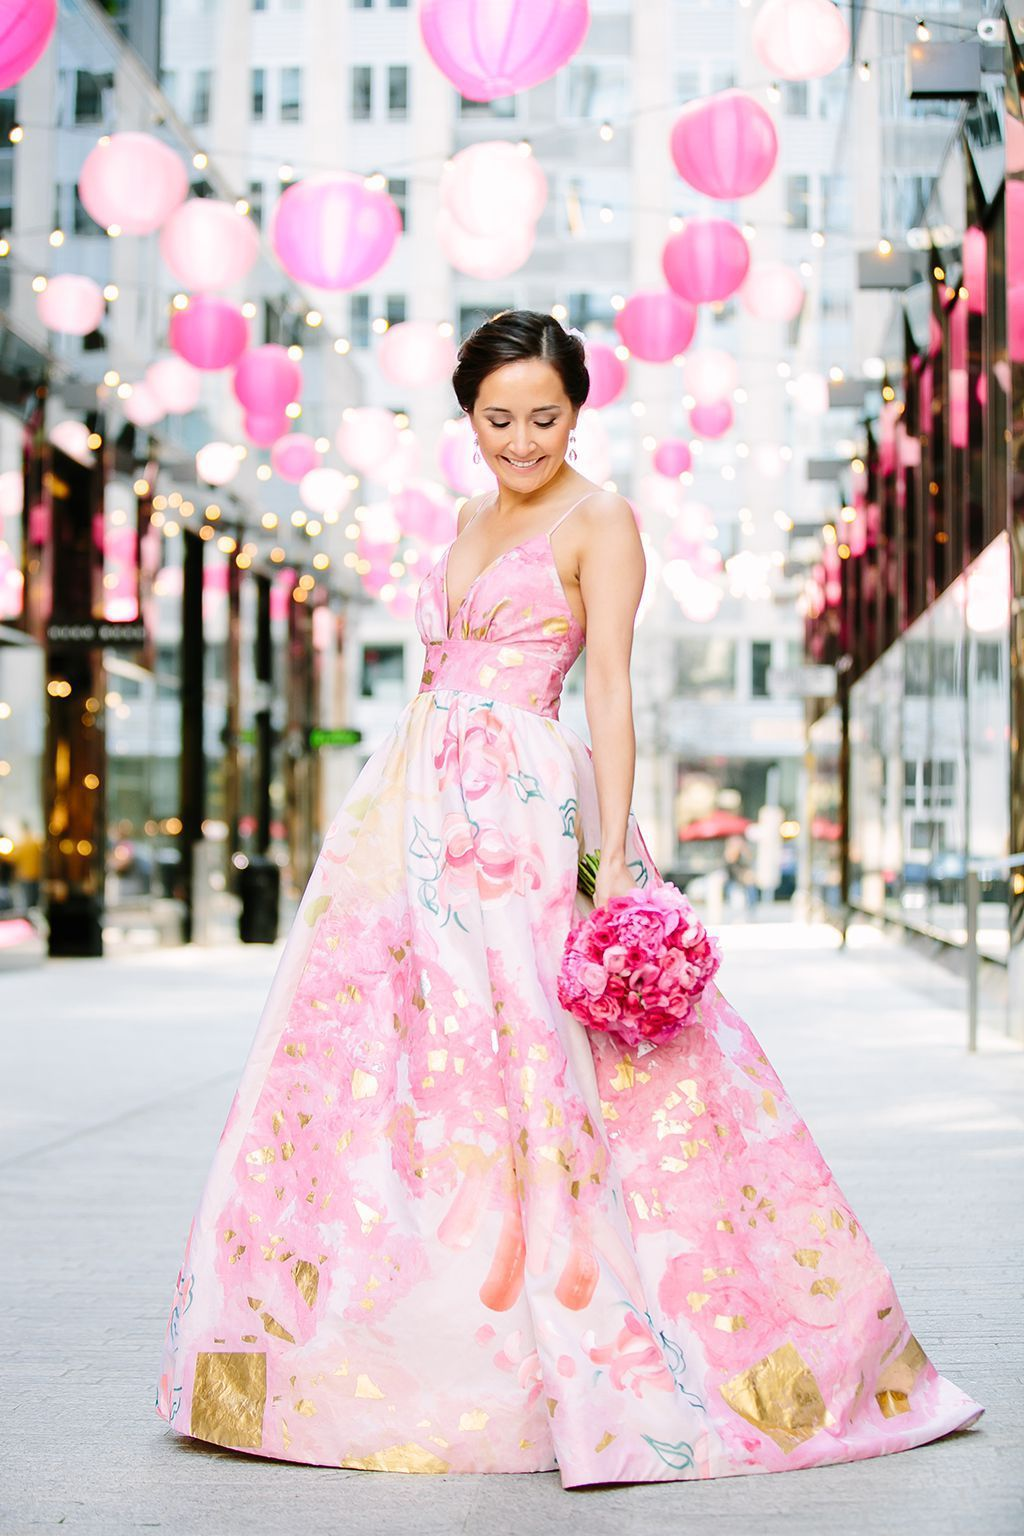 A Pink Gown Arcade Games And Fried Chicken Make This DC Wedding So Much Fun